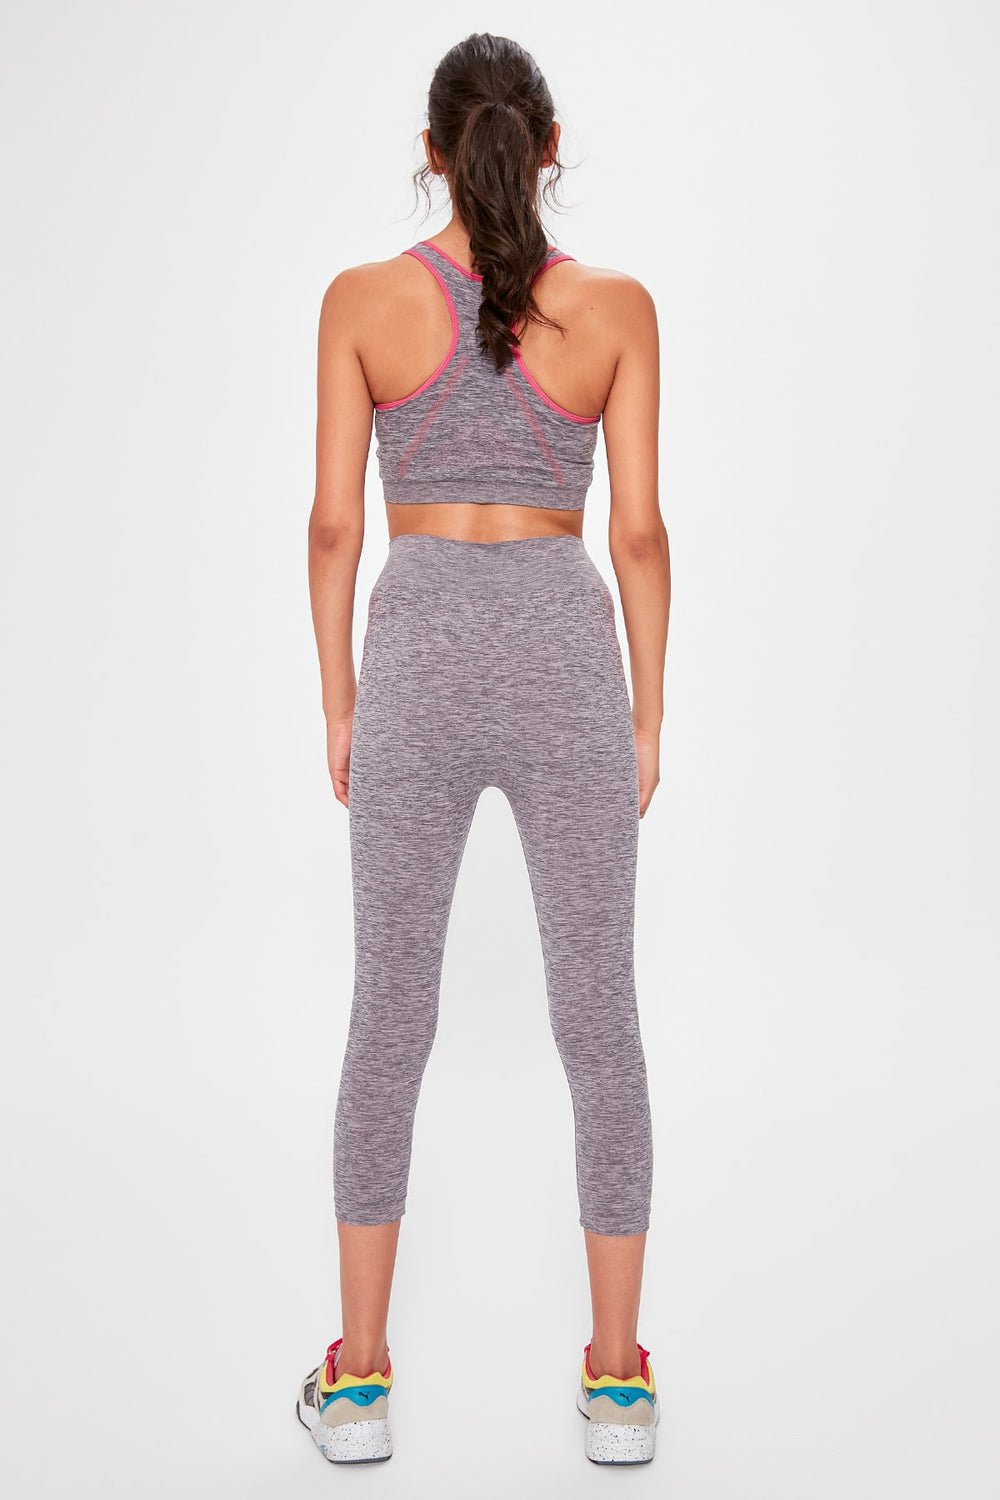 Miss Zut Miss Zut Gray Seamless Sports Leggings Miss Zut &CO